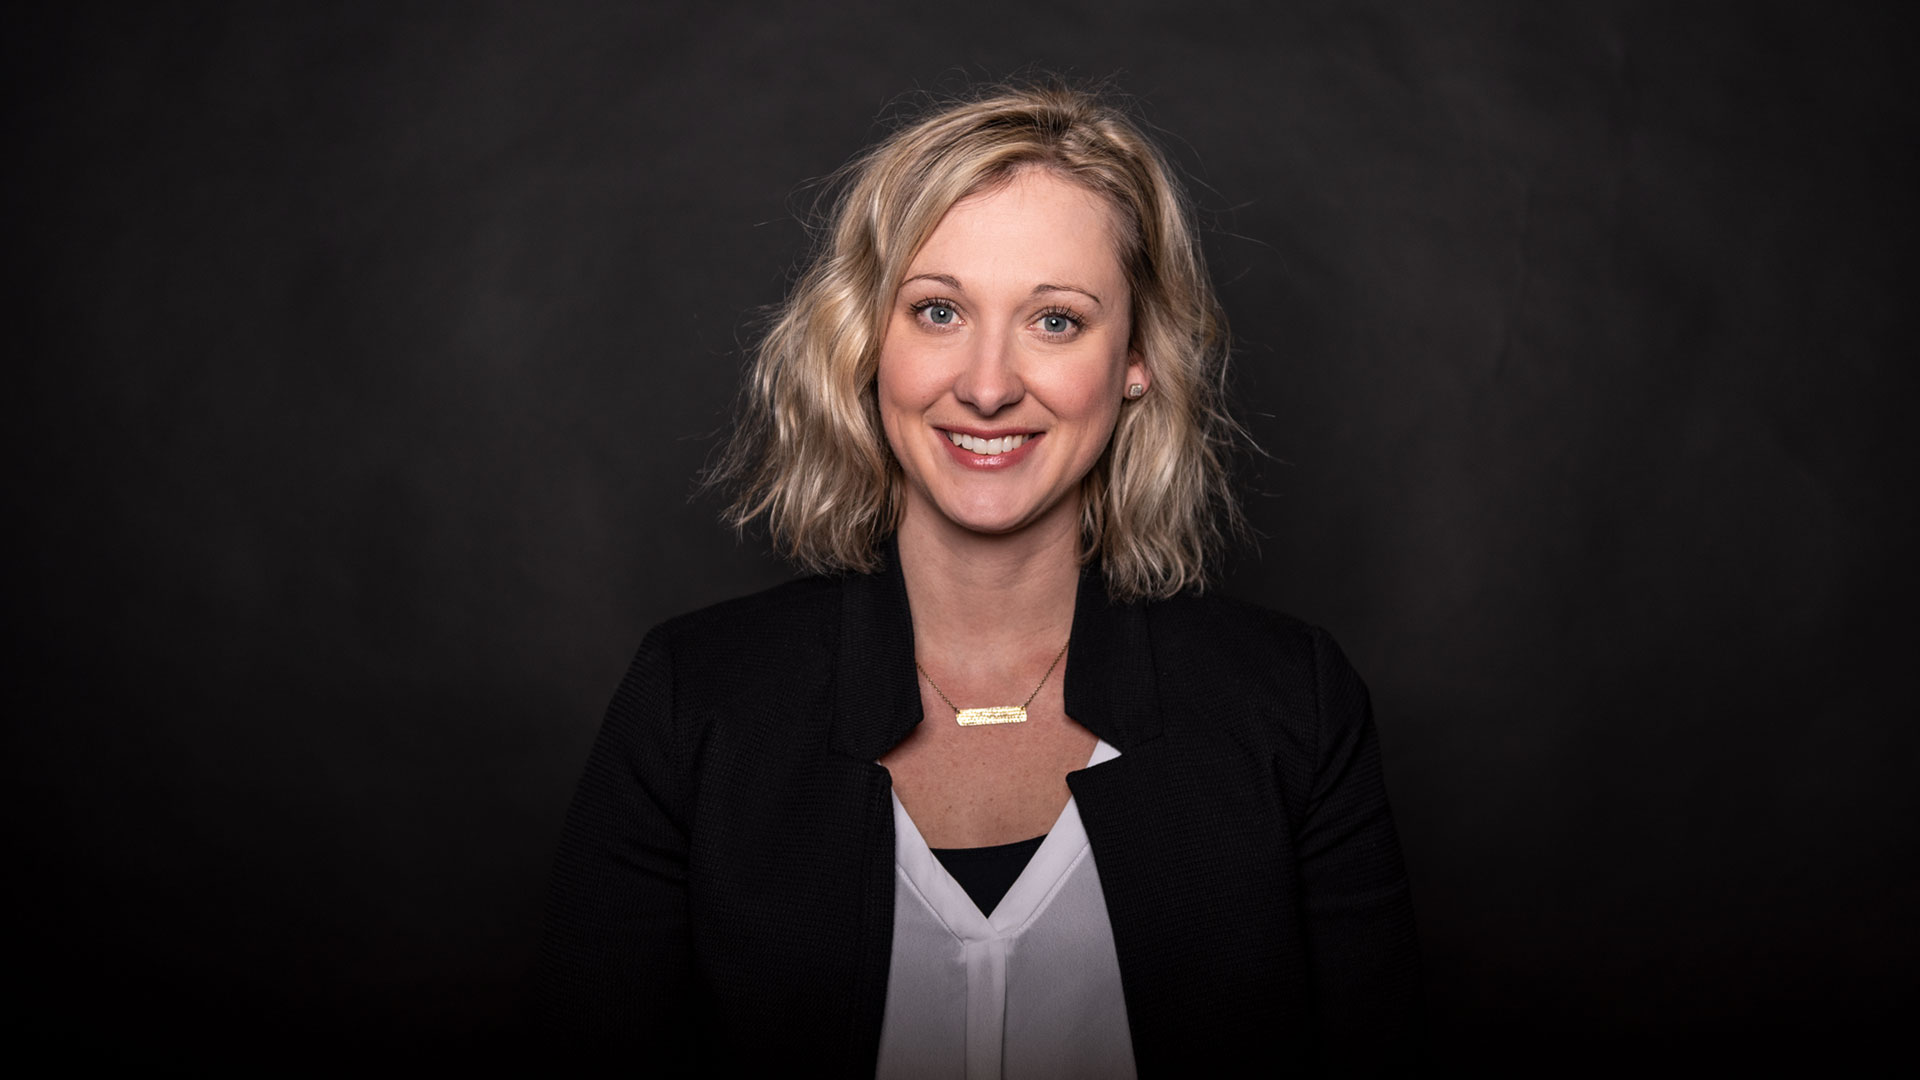 Stacey Sauvé, EXECUTIVE VICE PRESIDENT / MARKETING COMMUNICATIONS ADVISOR